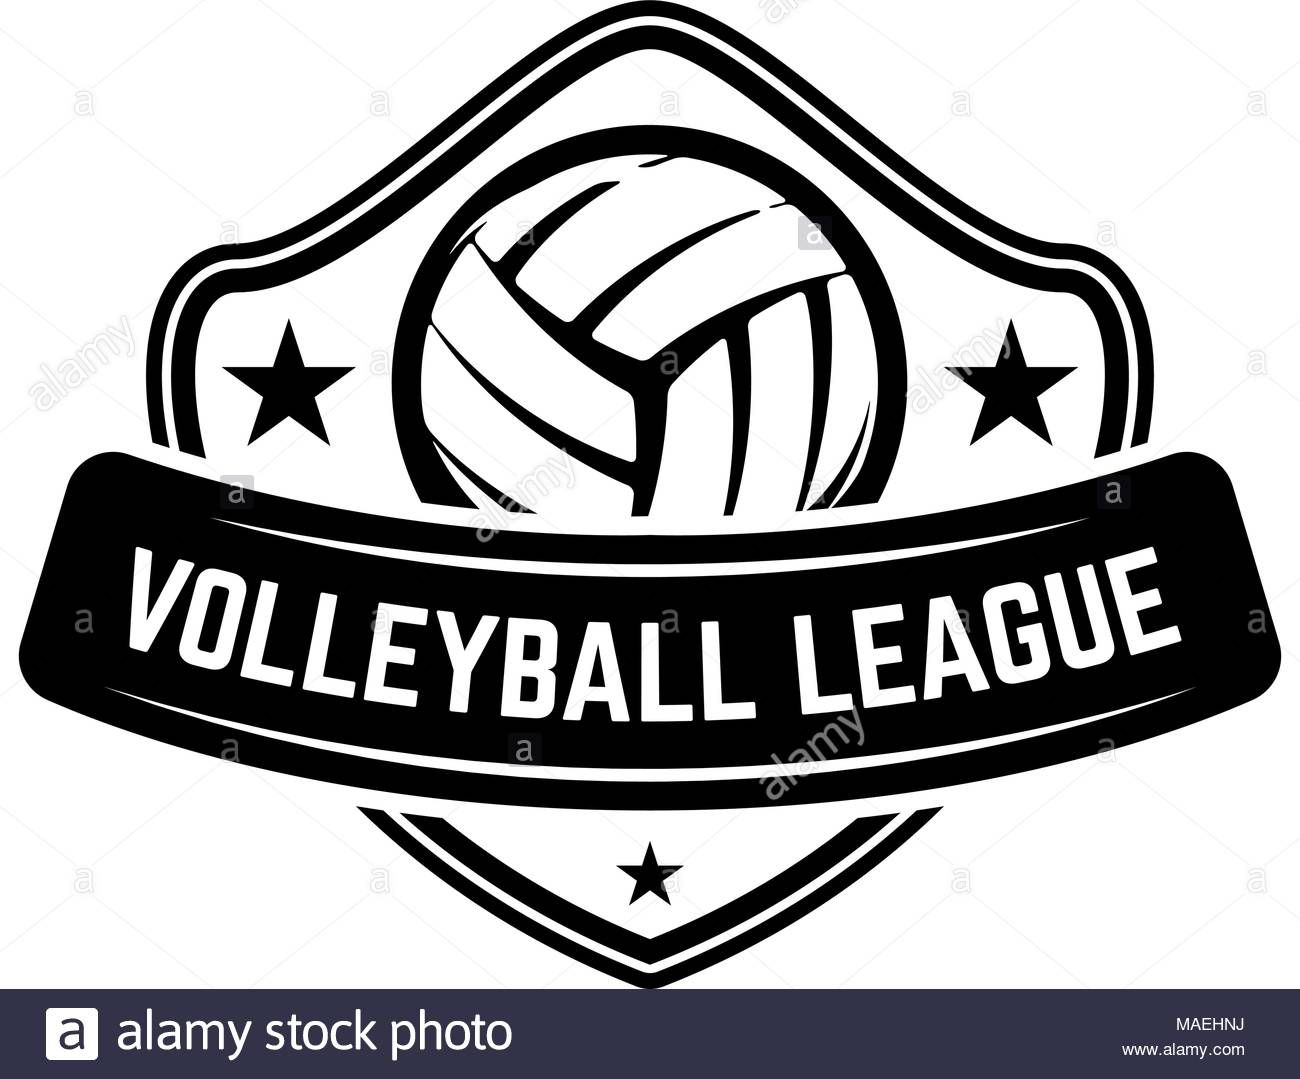 Download This Stock Vector Emblem Template With Volleyball Ball Isolated On White Background Design Element For Logo Label Emblem Sign Vector Illustration